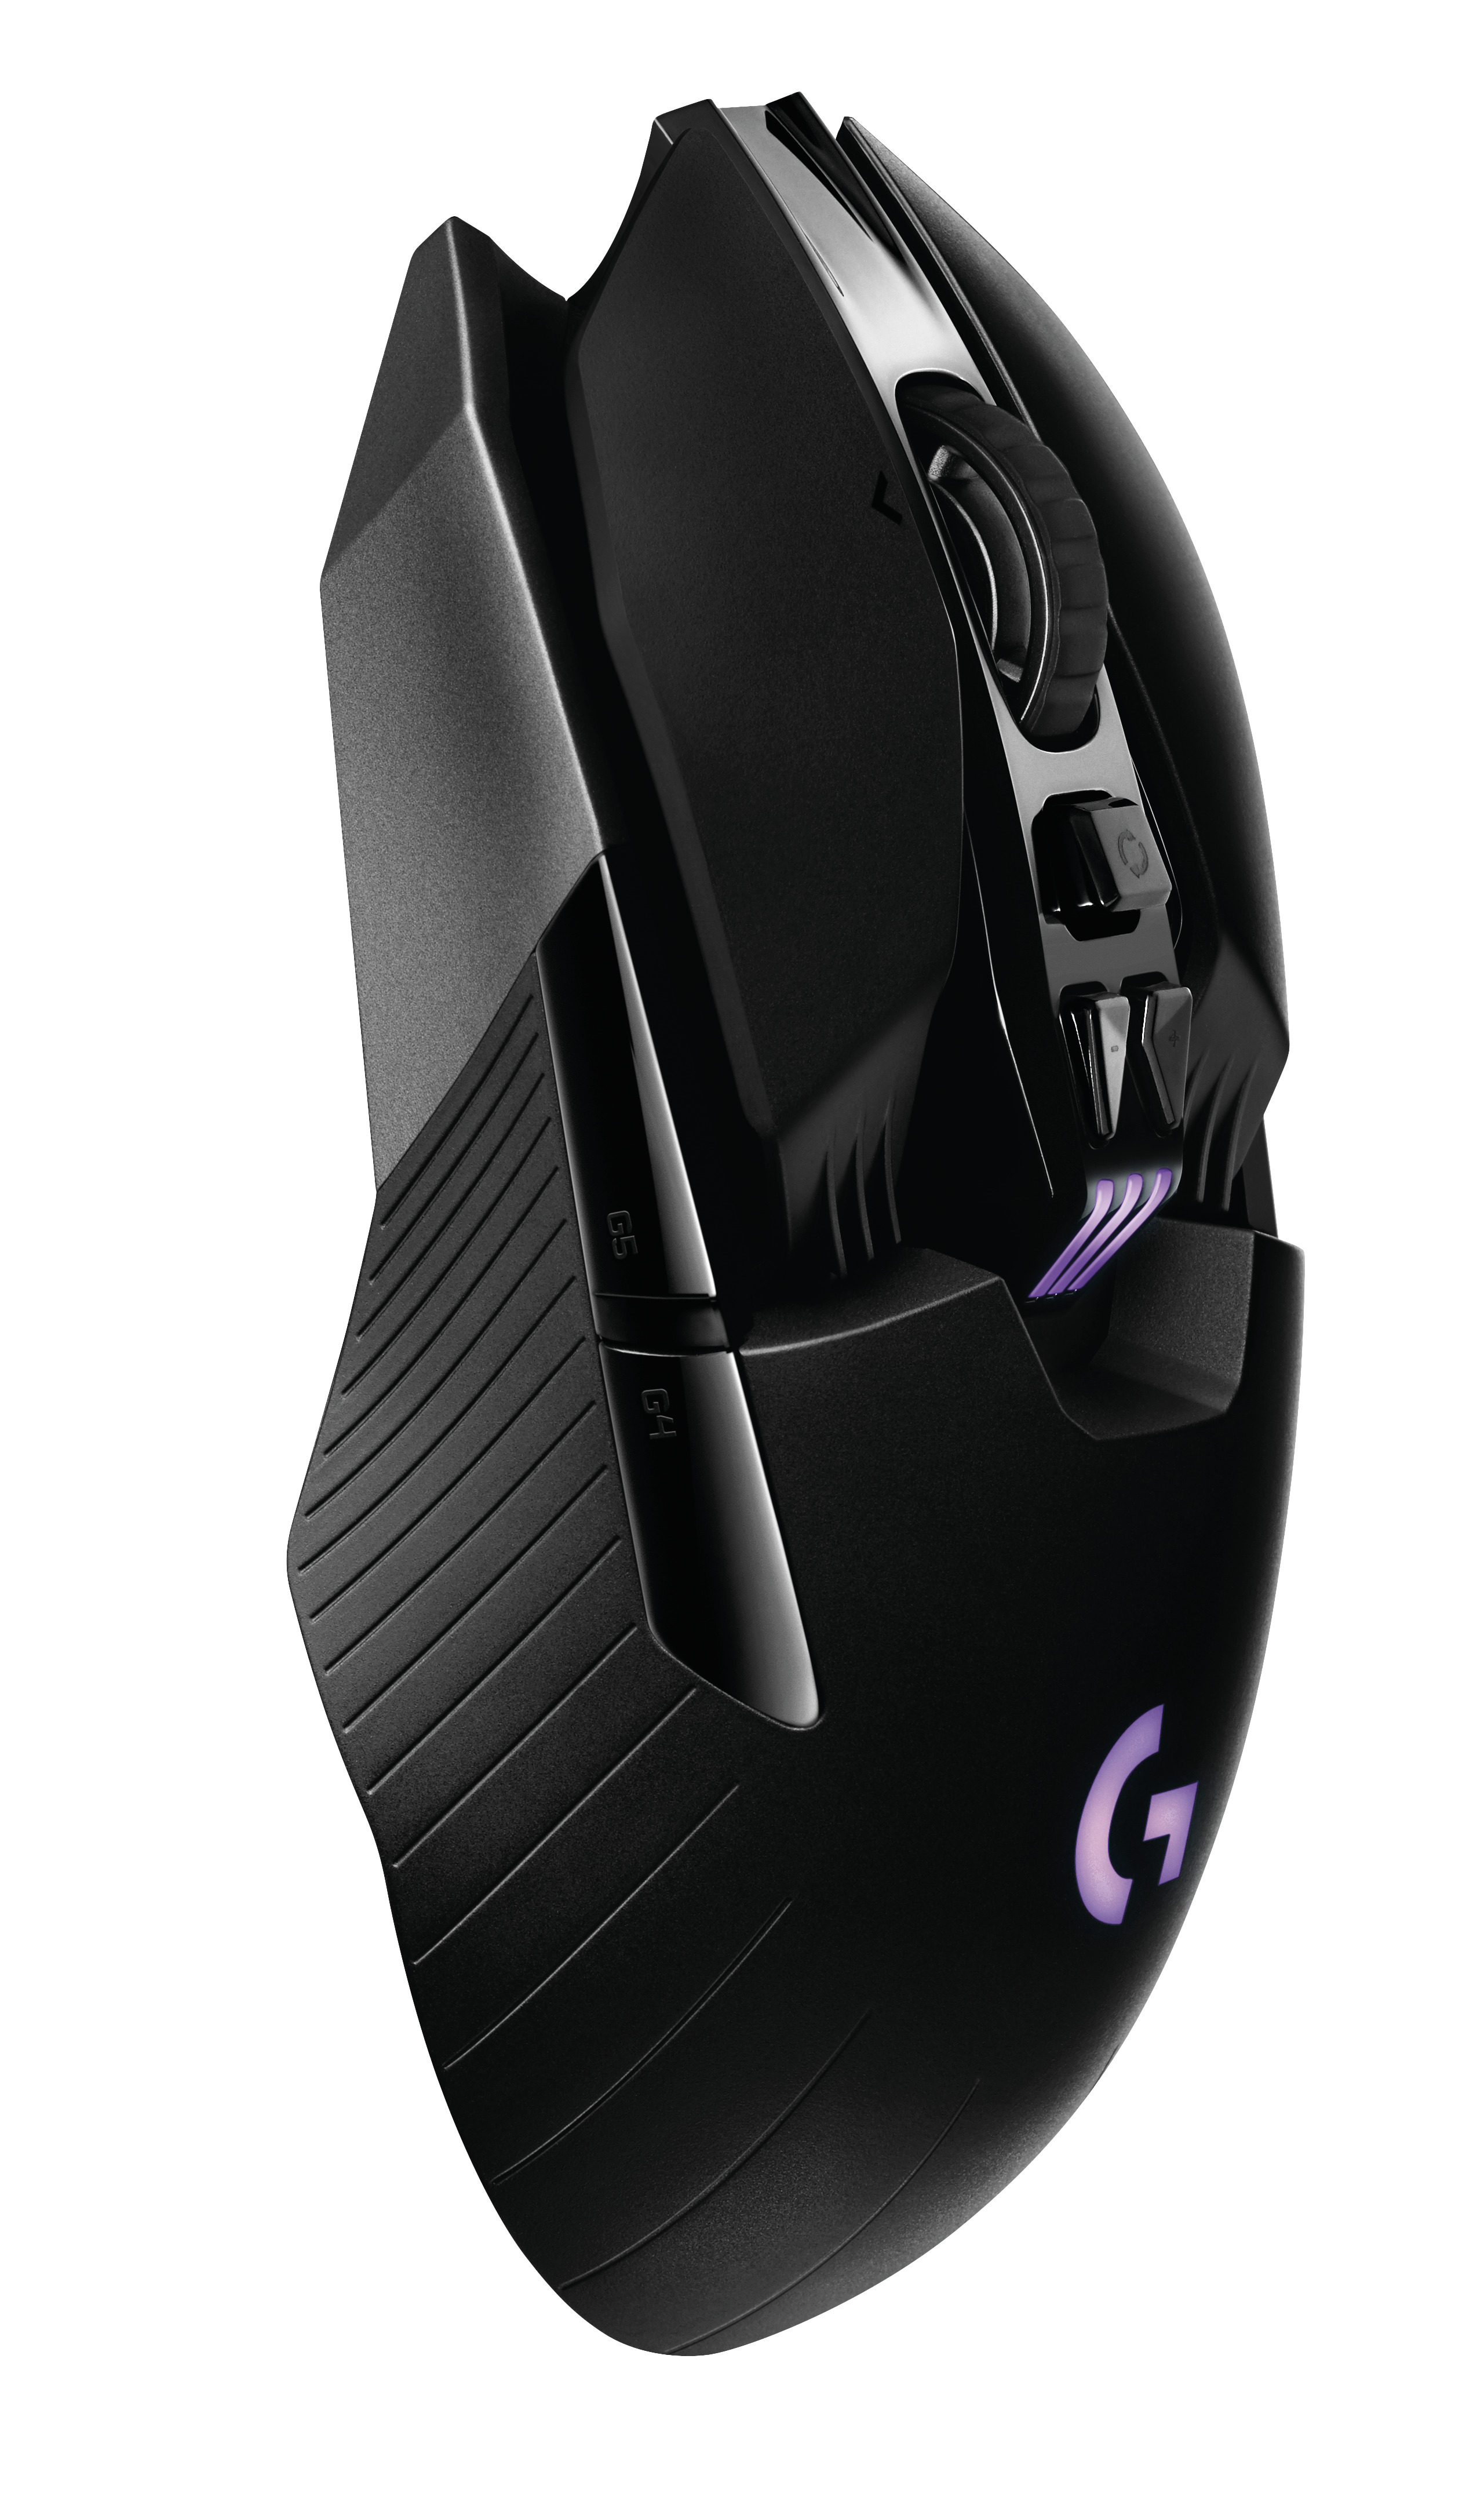 best optical gaming mice